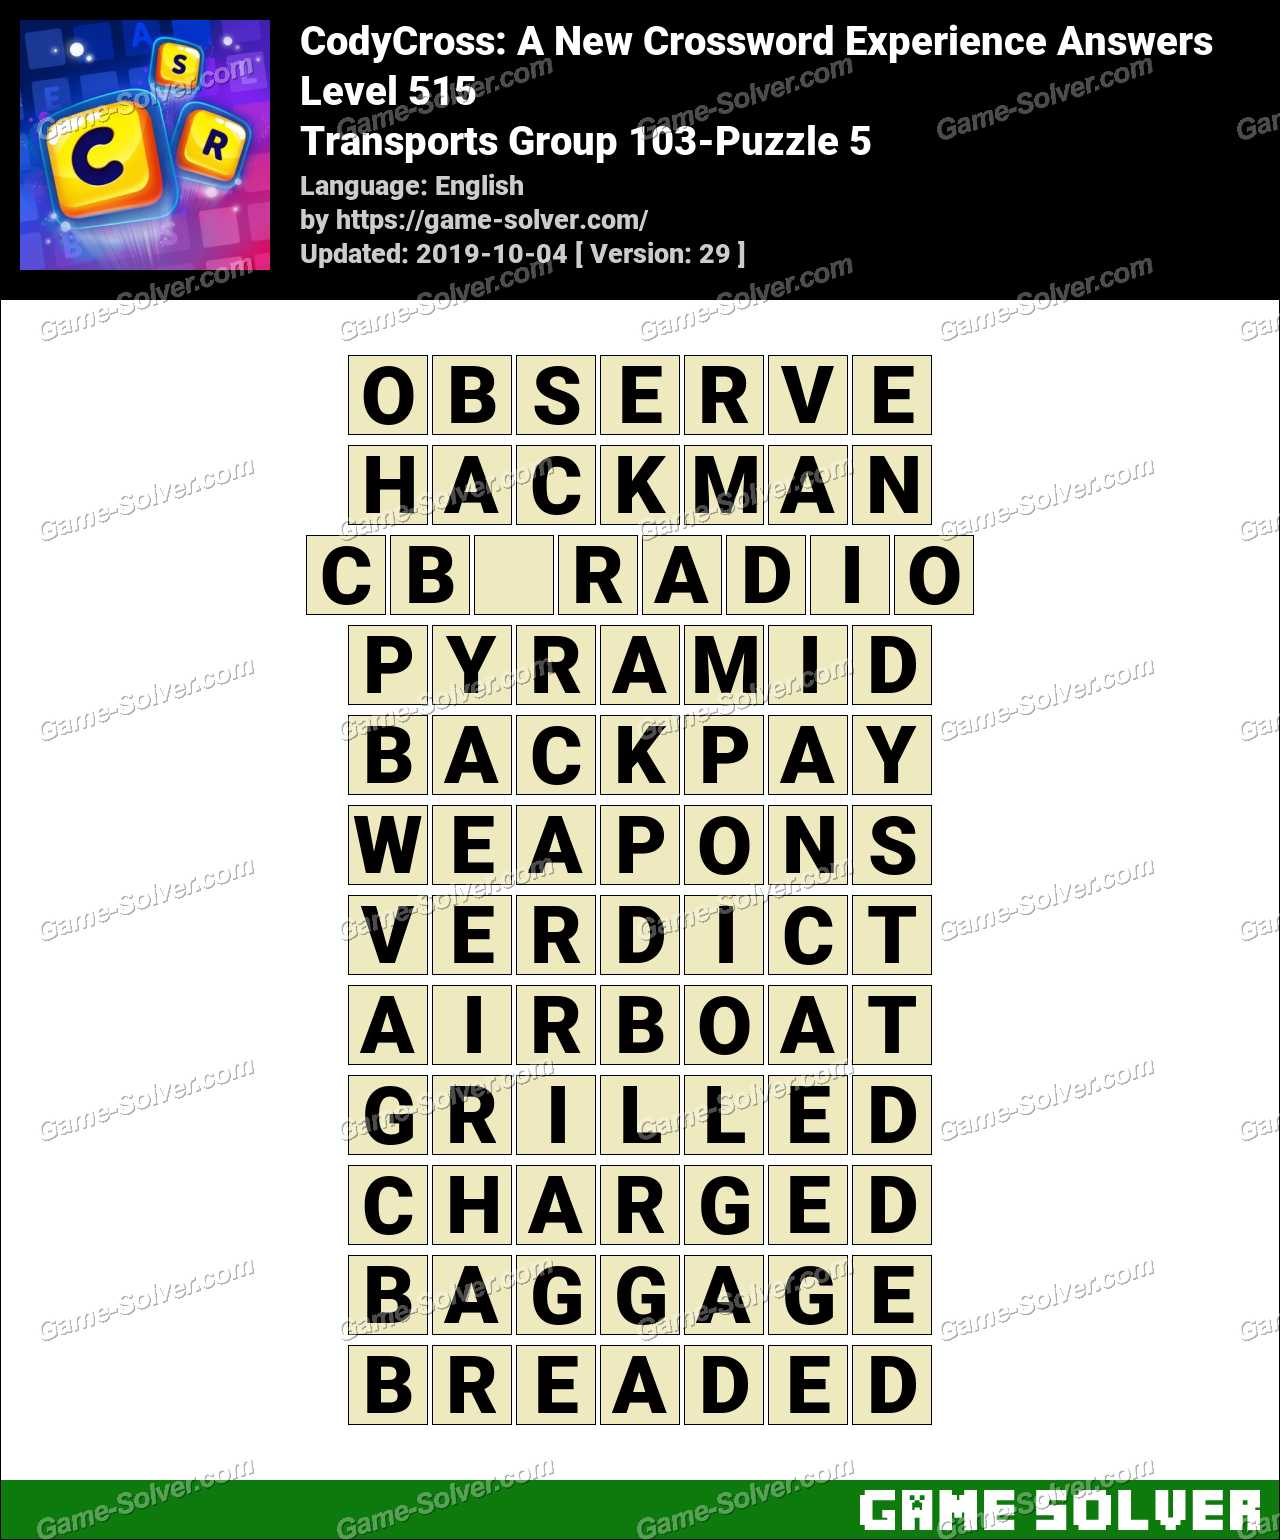 CodyCross Transports Group 103-Puzzle 5 Answers